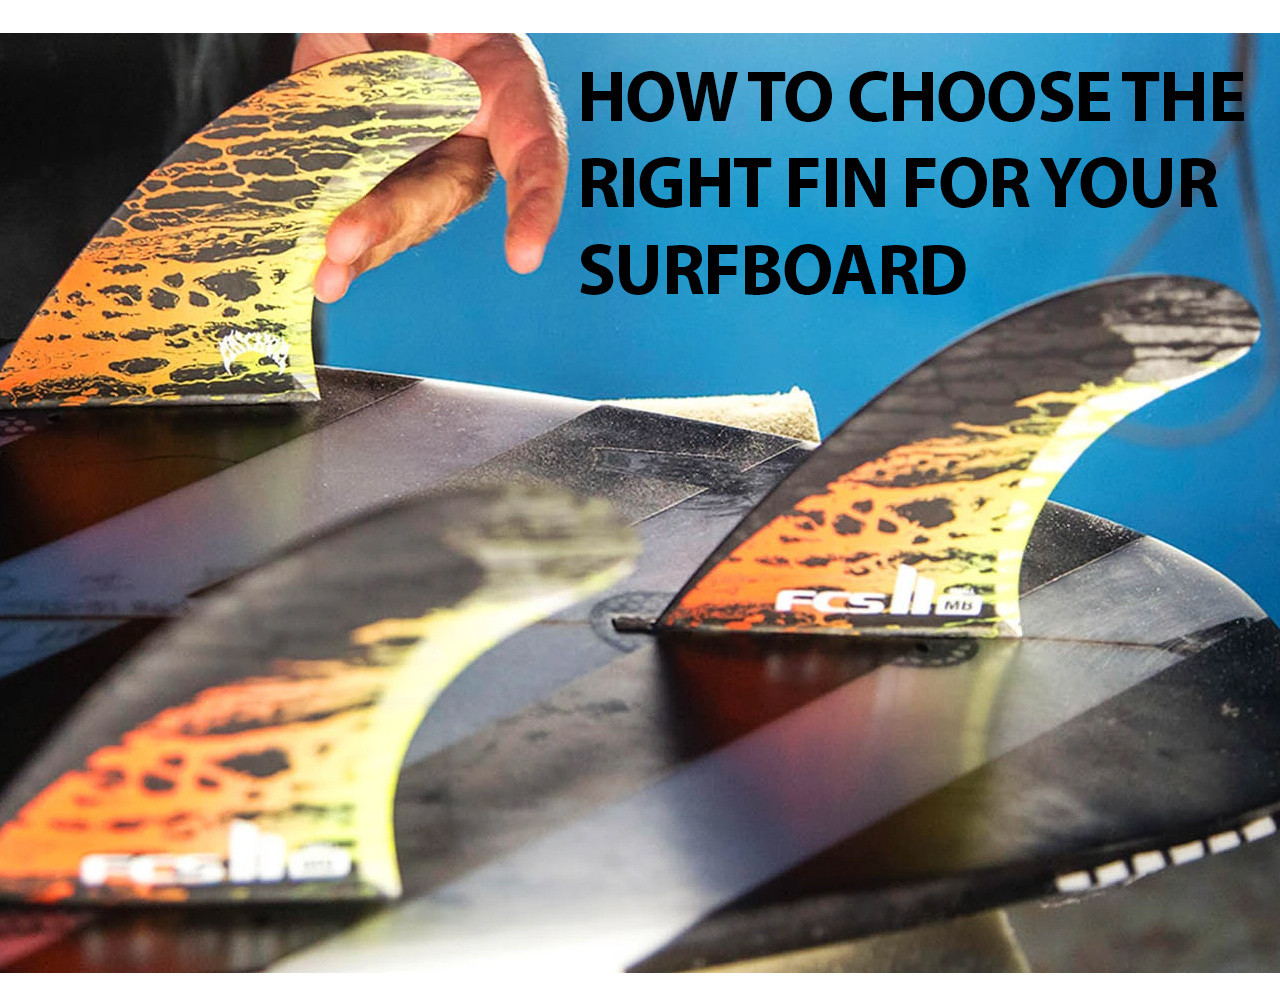 Choosing The Best Surfboard Fin For Your Surfboard